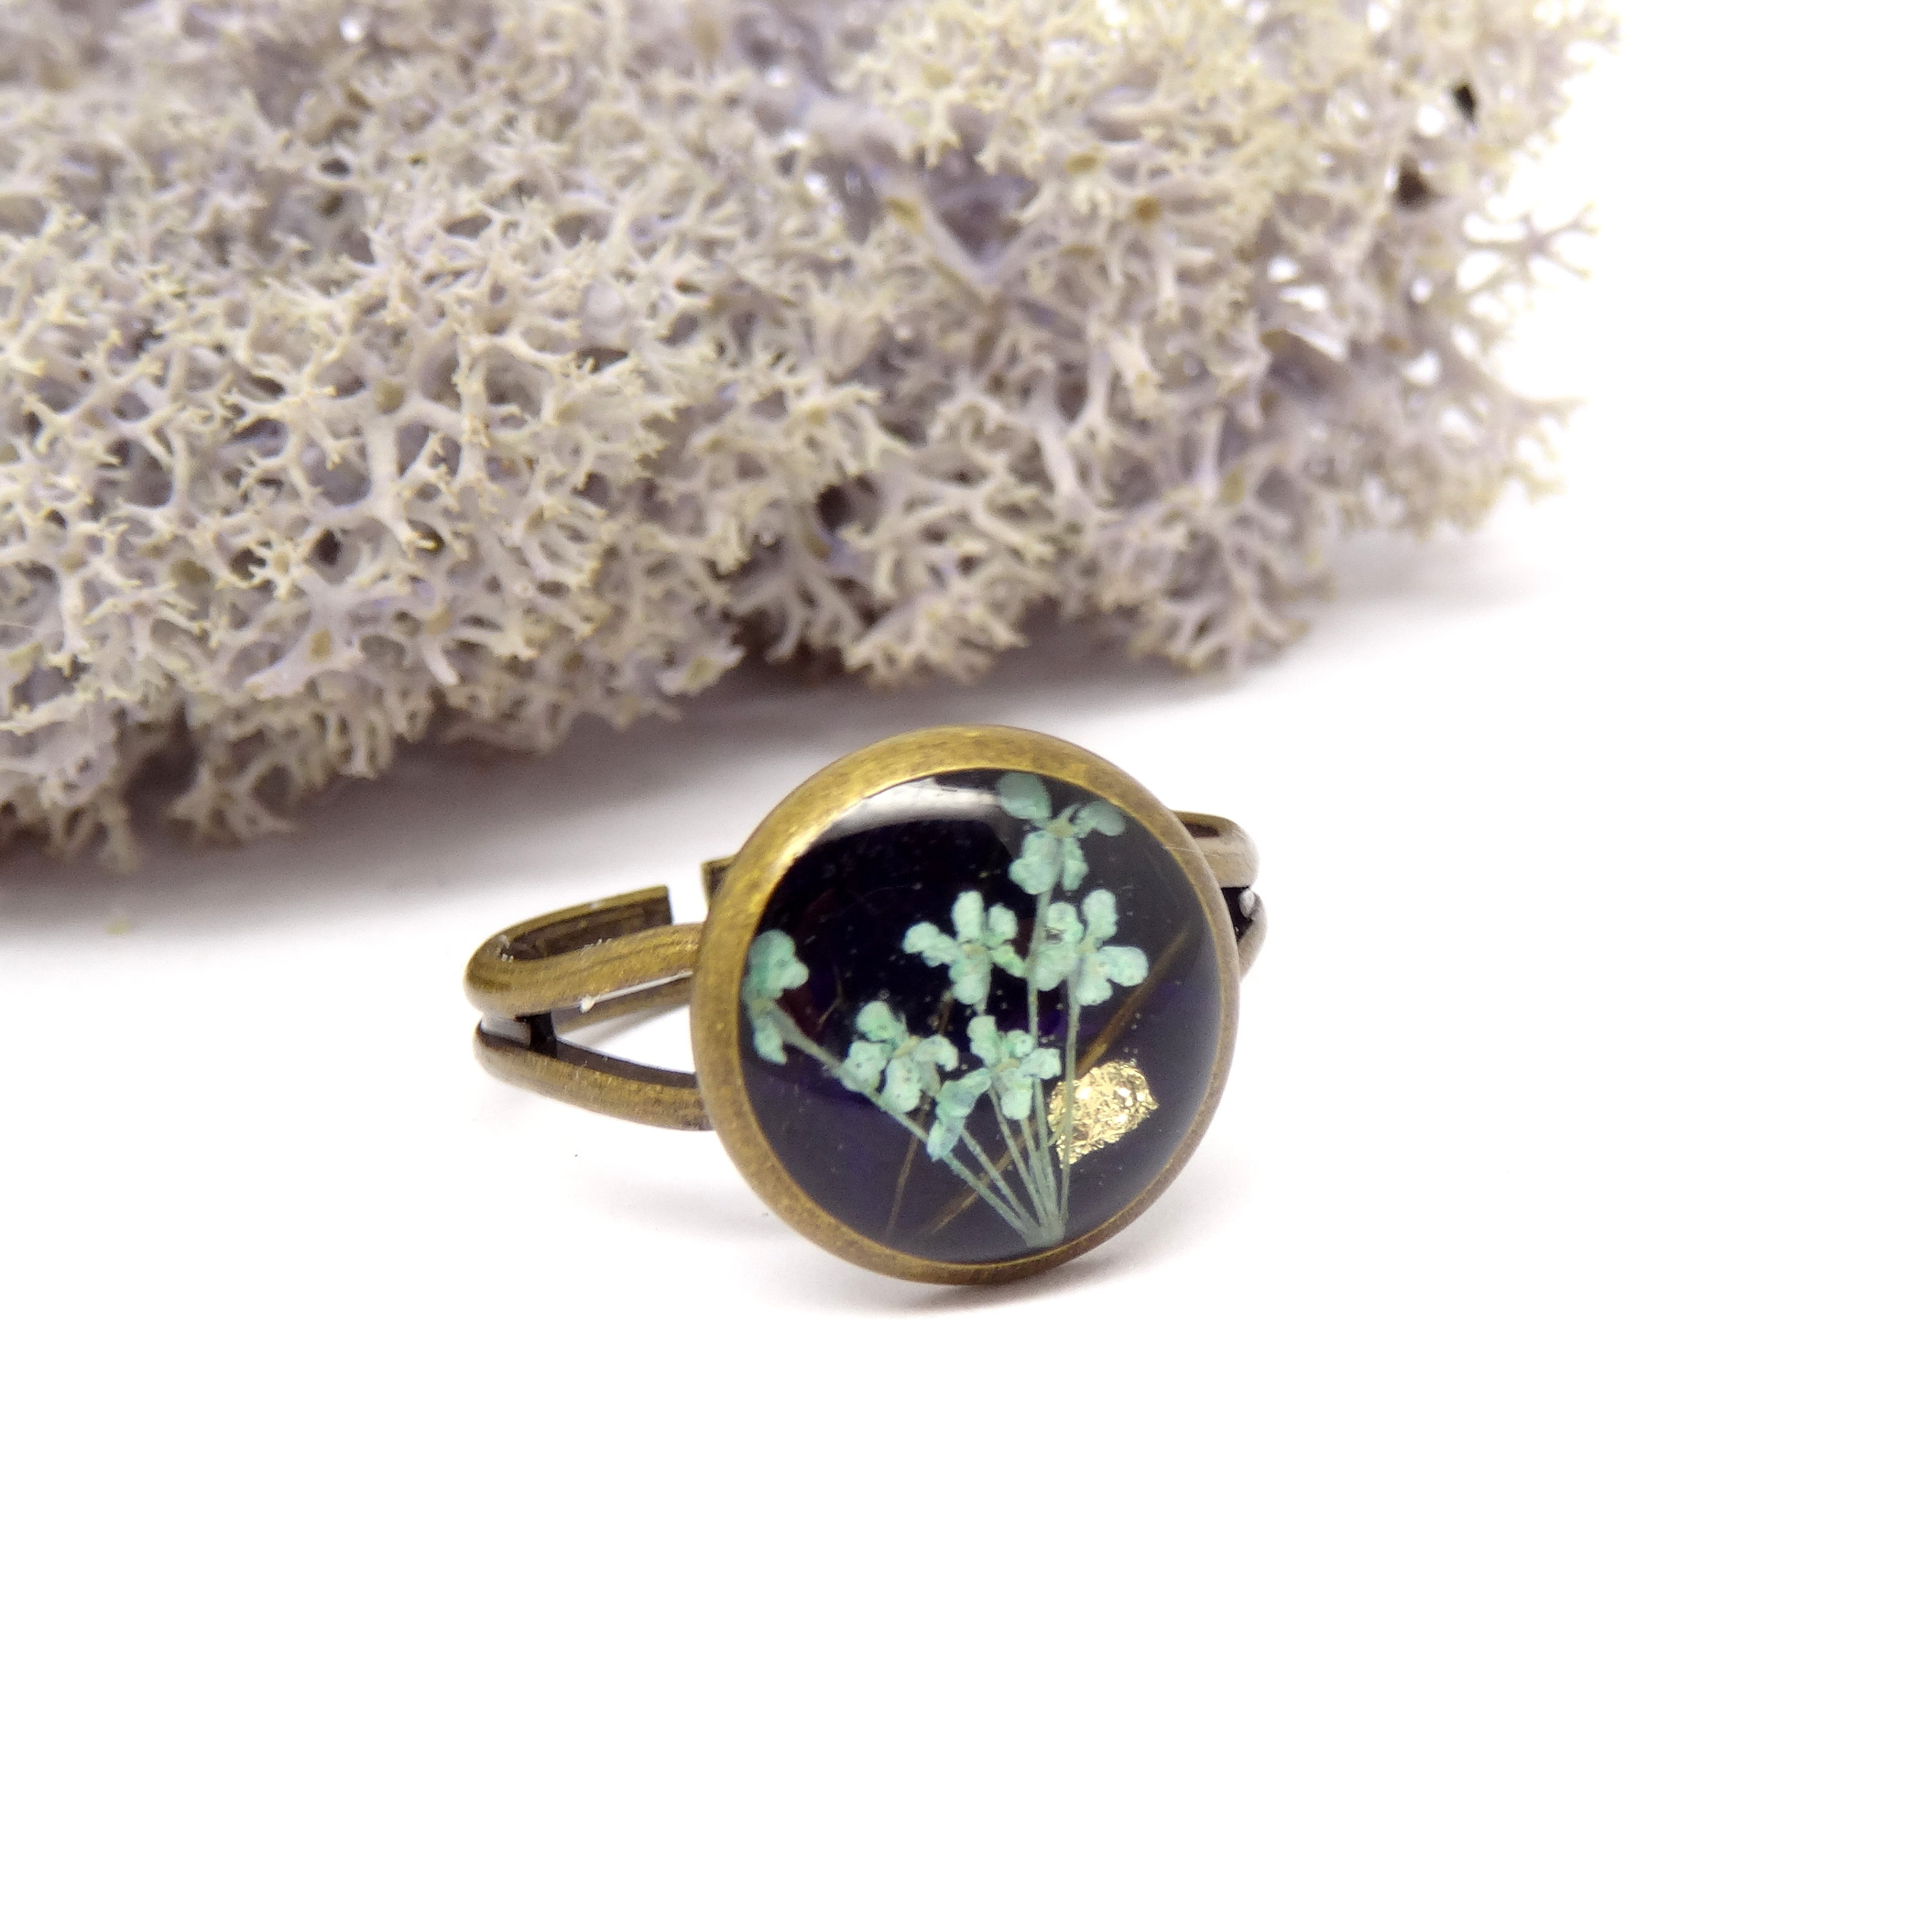 Real flower ring, unique jewellery, adjustable ring, handmade ring, real flower jewelry, resin jewellery, preserved flowers, pressed flowers